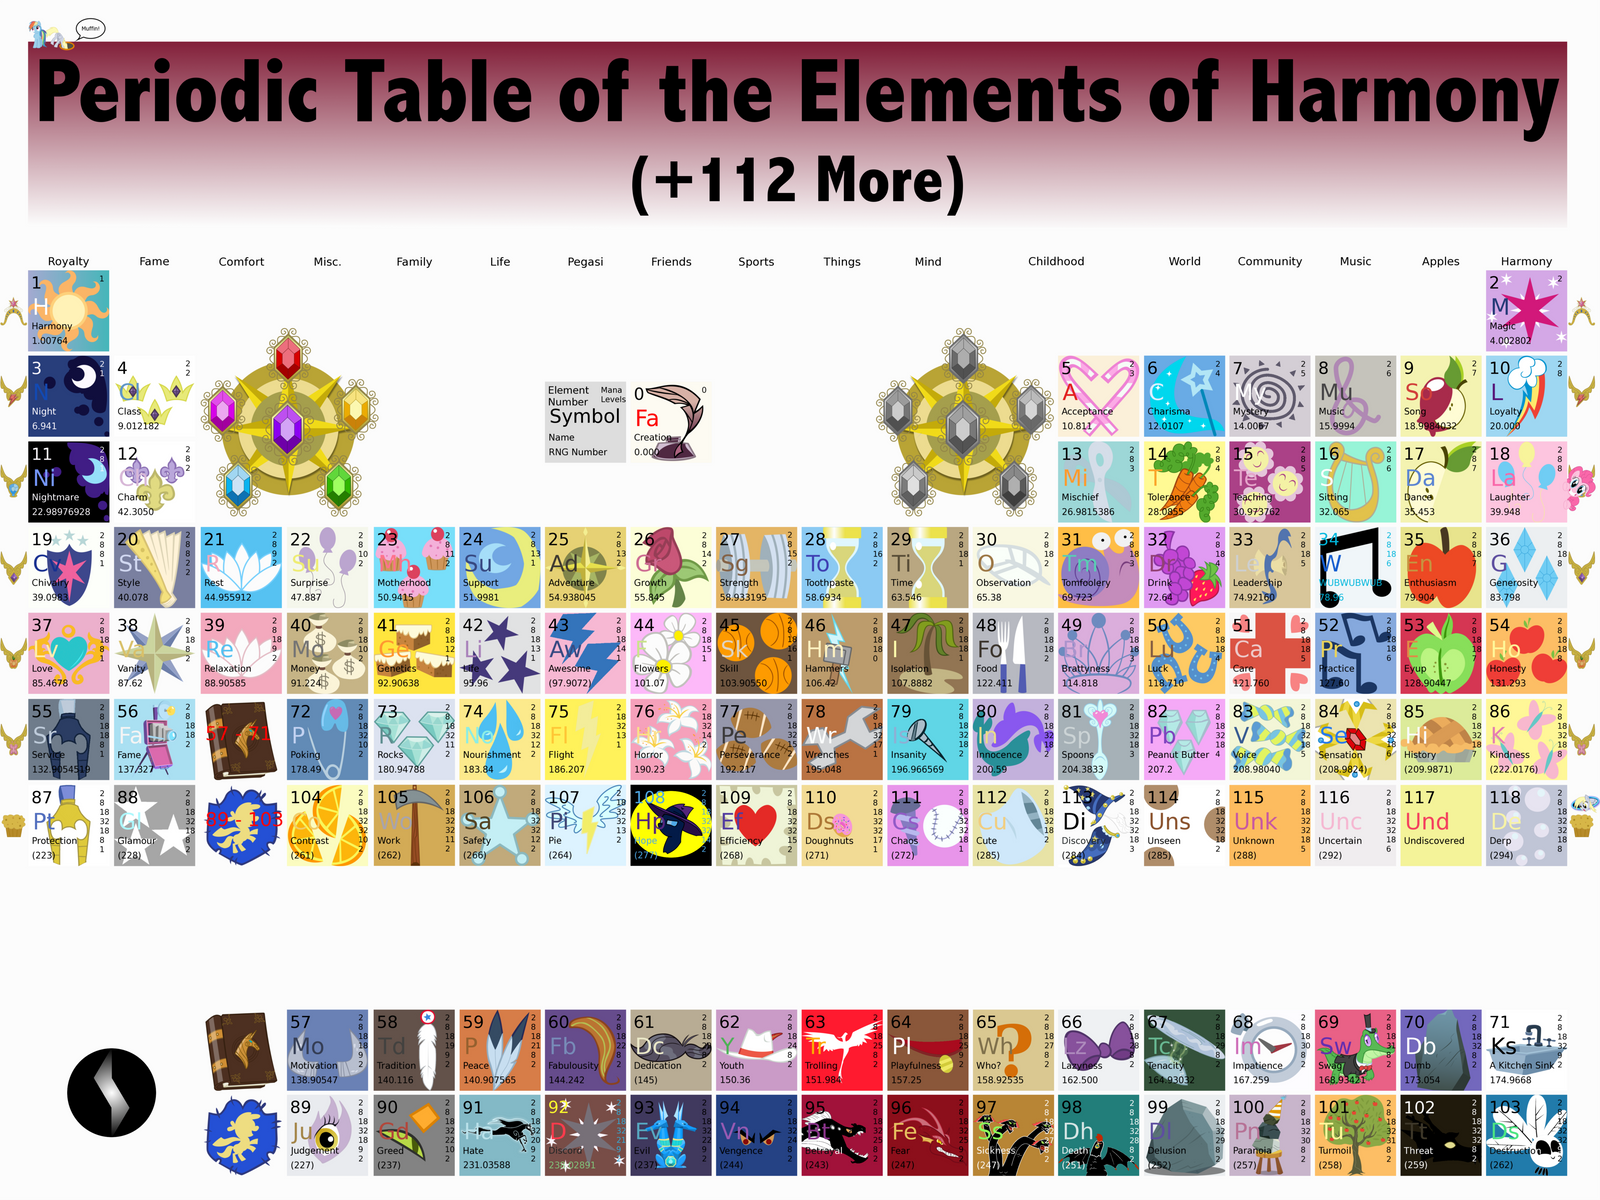 Periodic Table Of The Elements Of Harmony By Metalgearsamus On Deviantart